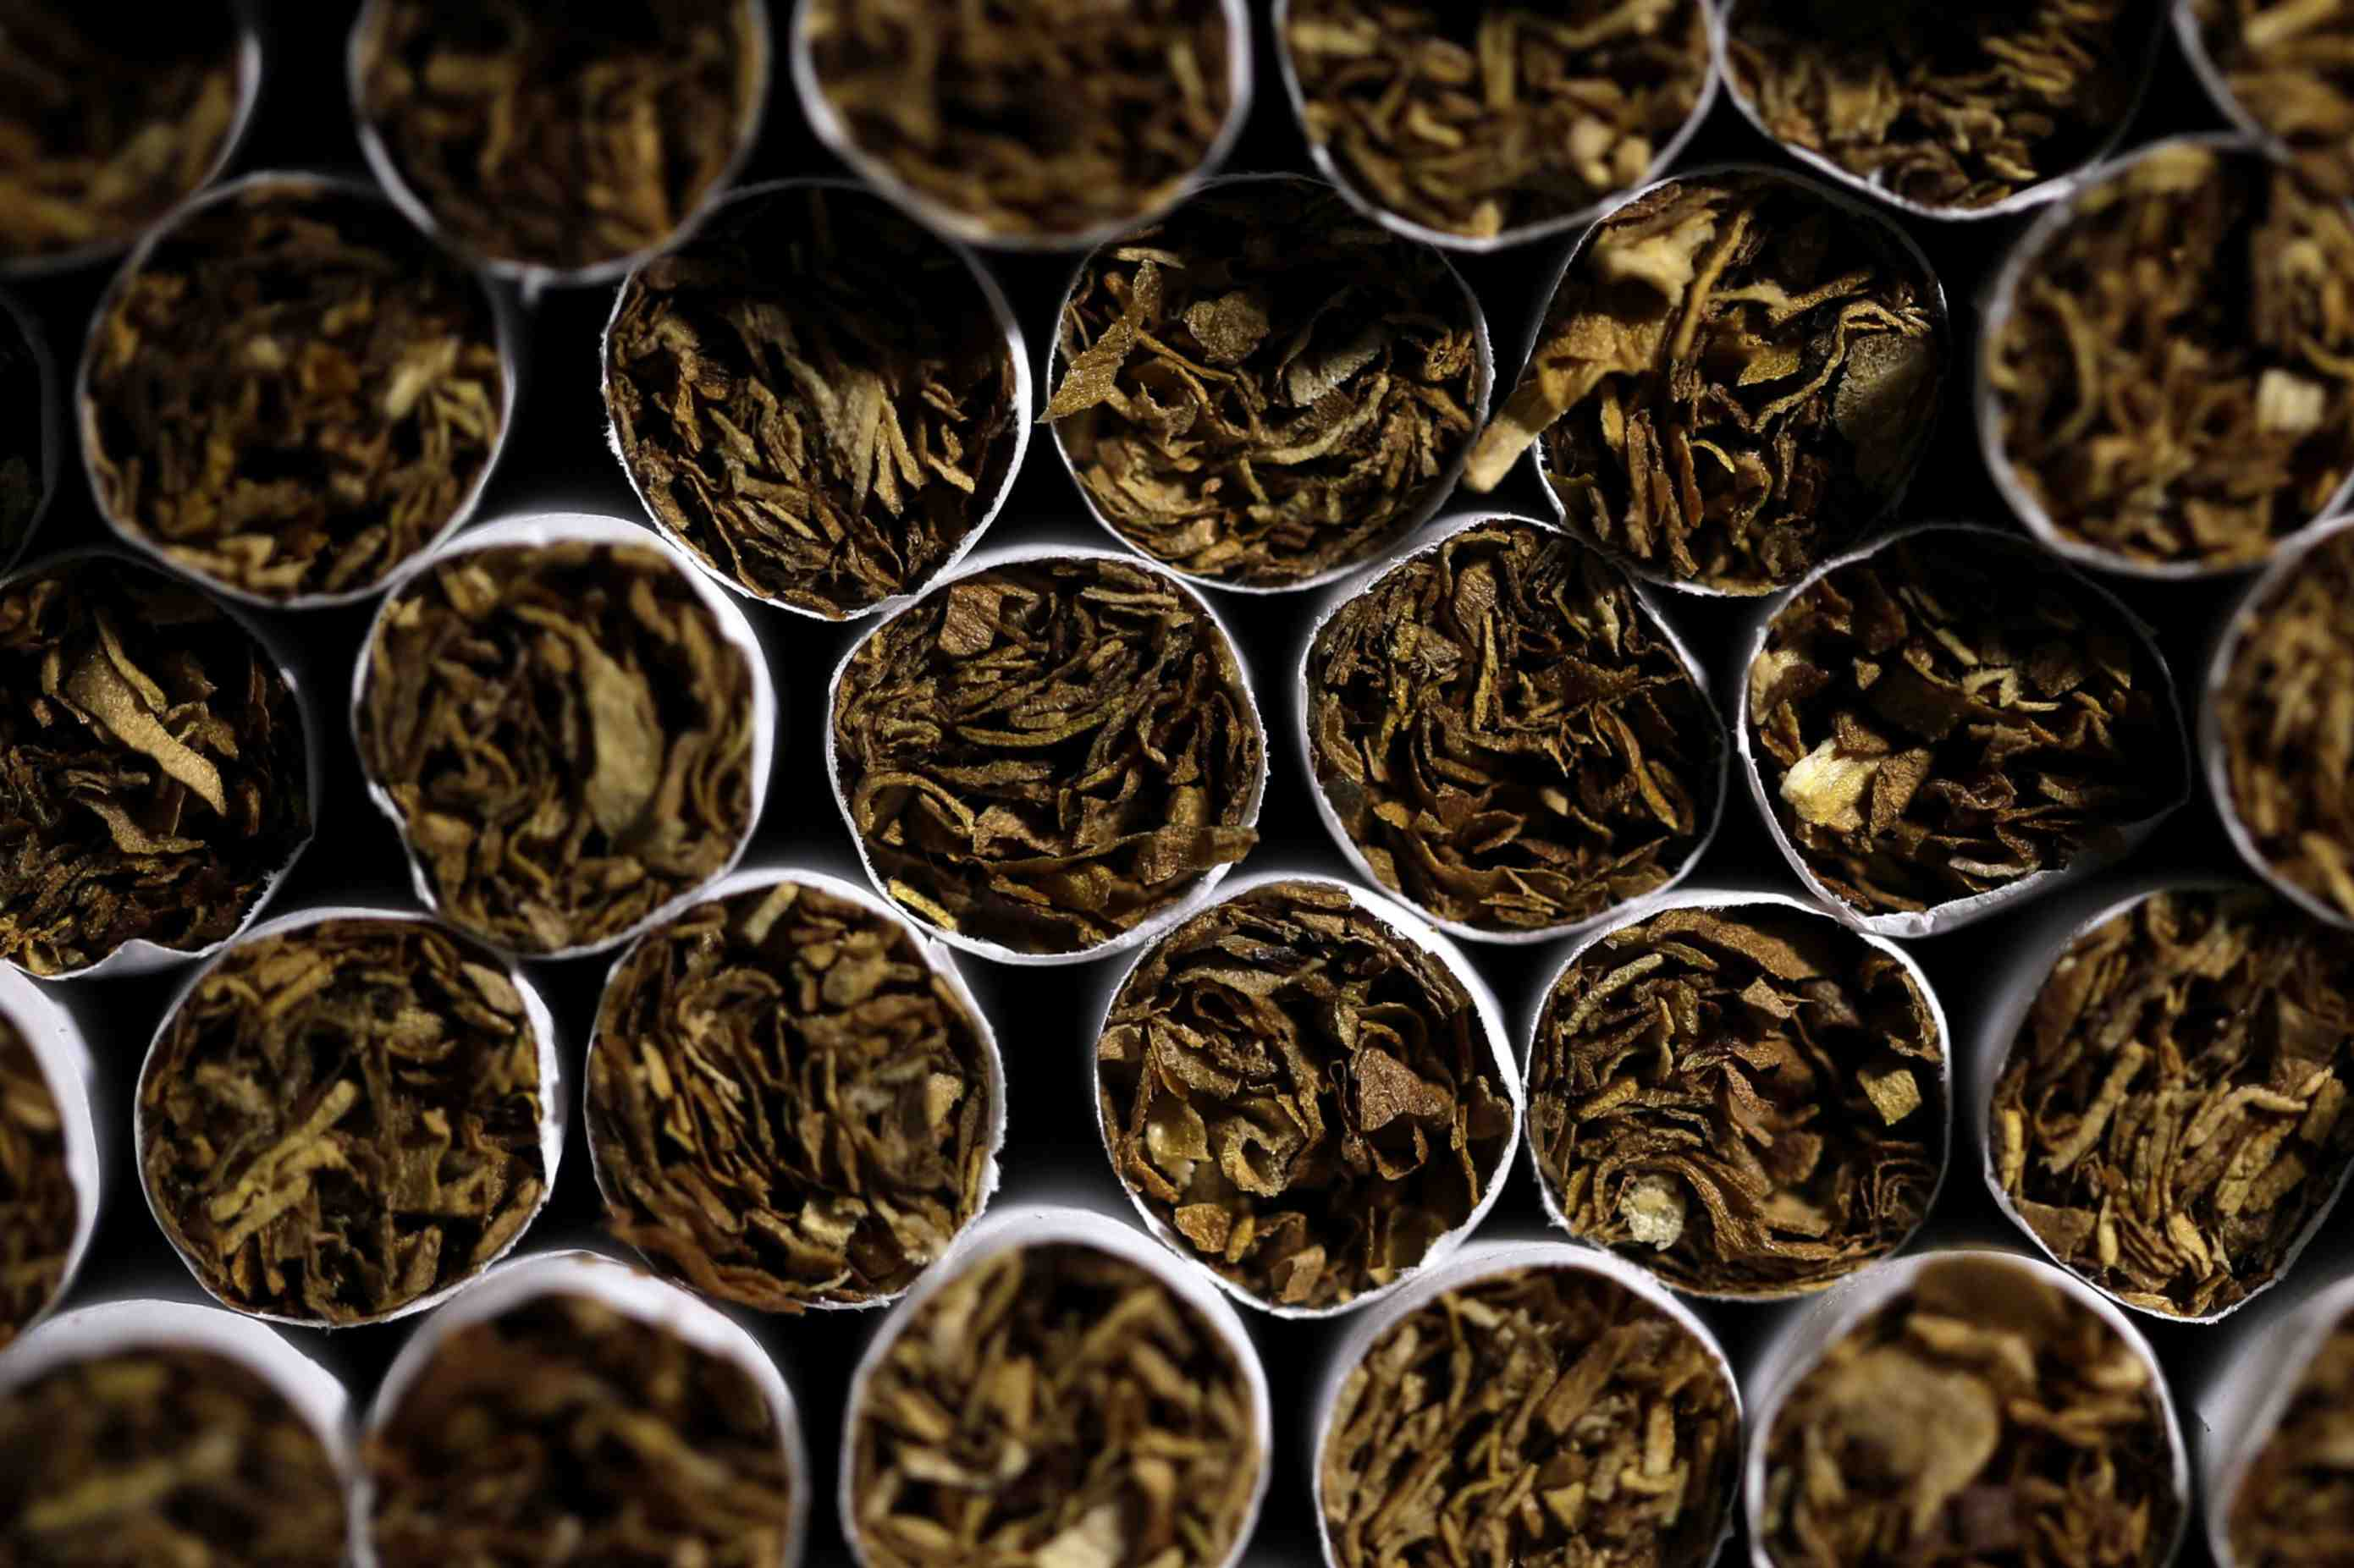 Japan Tobacco Inc. Products Ahead Of Full-Year Results